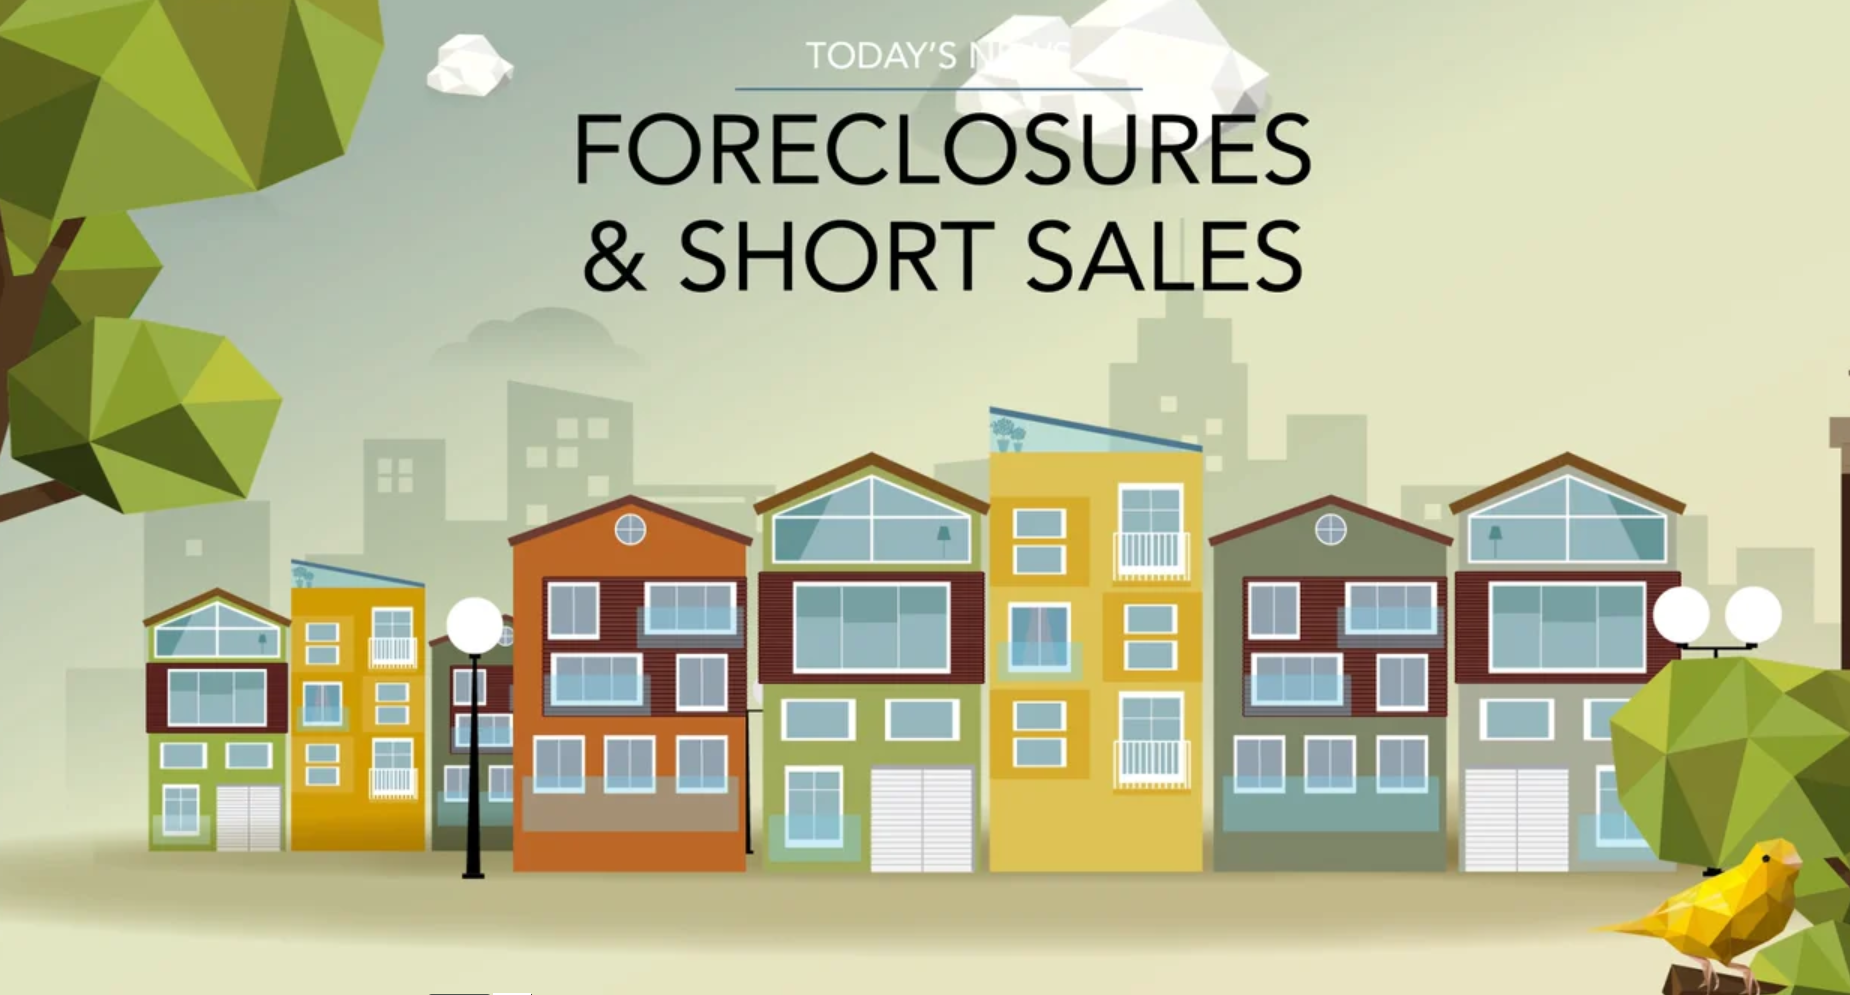 Forclosures and short sales